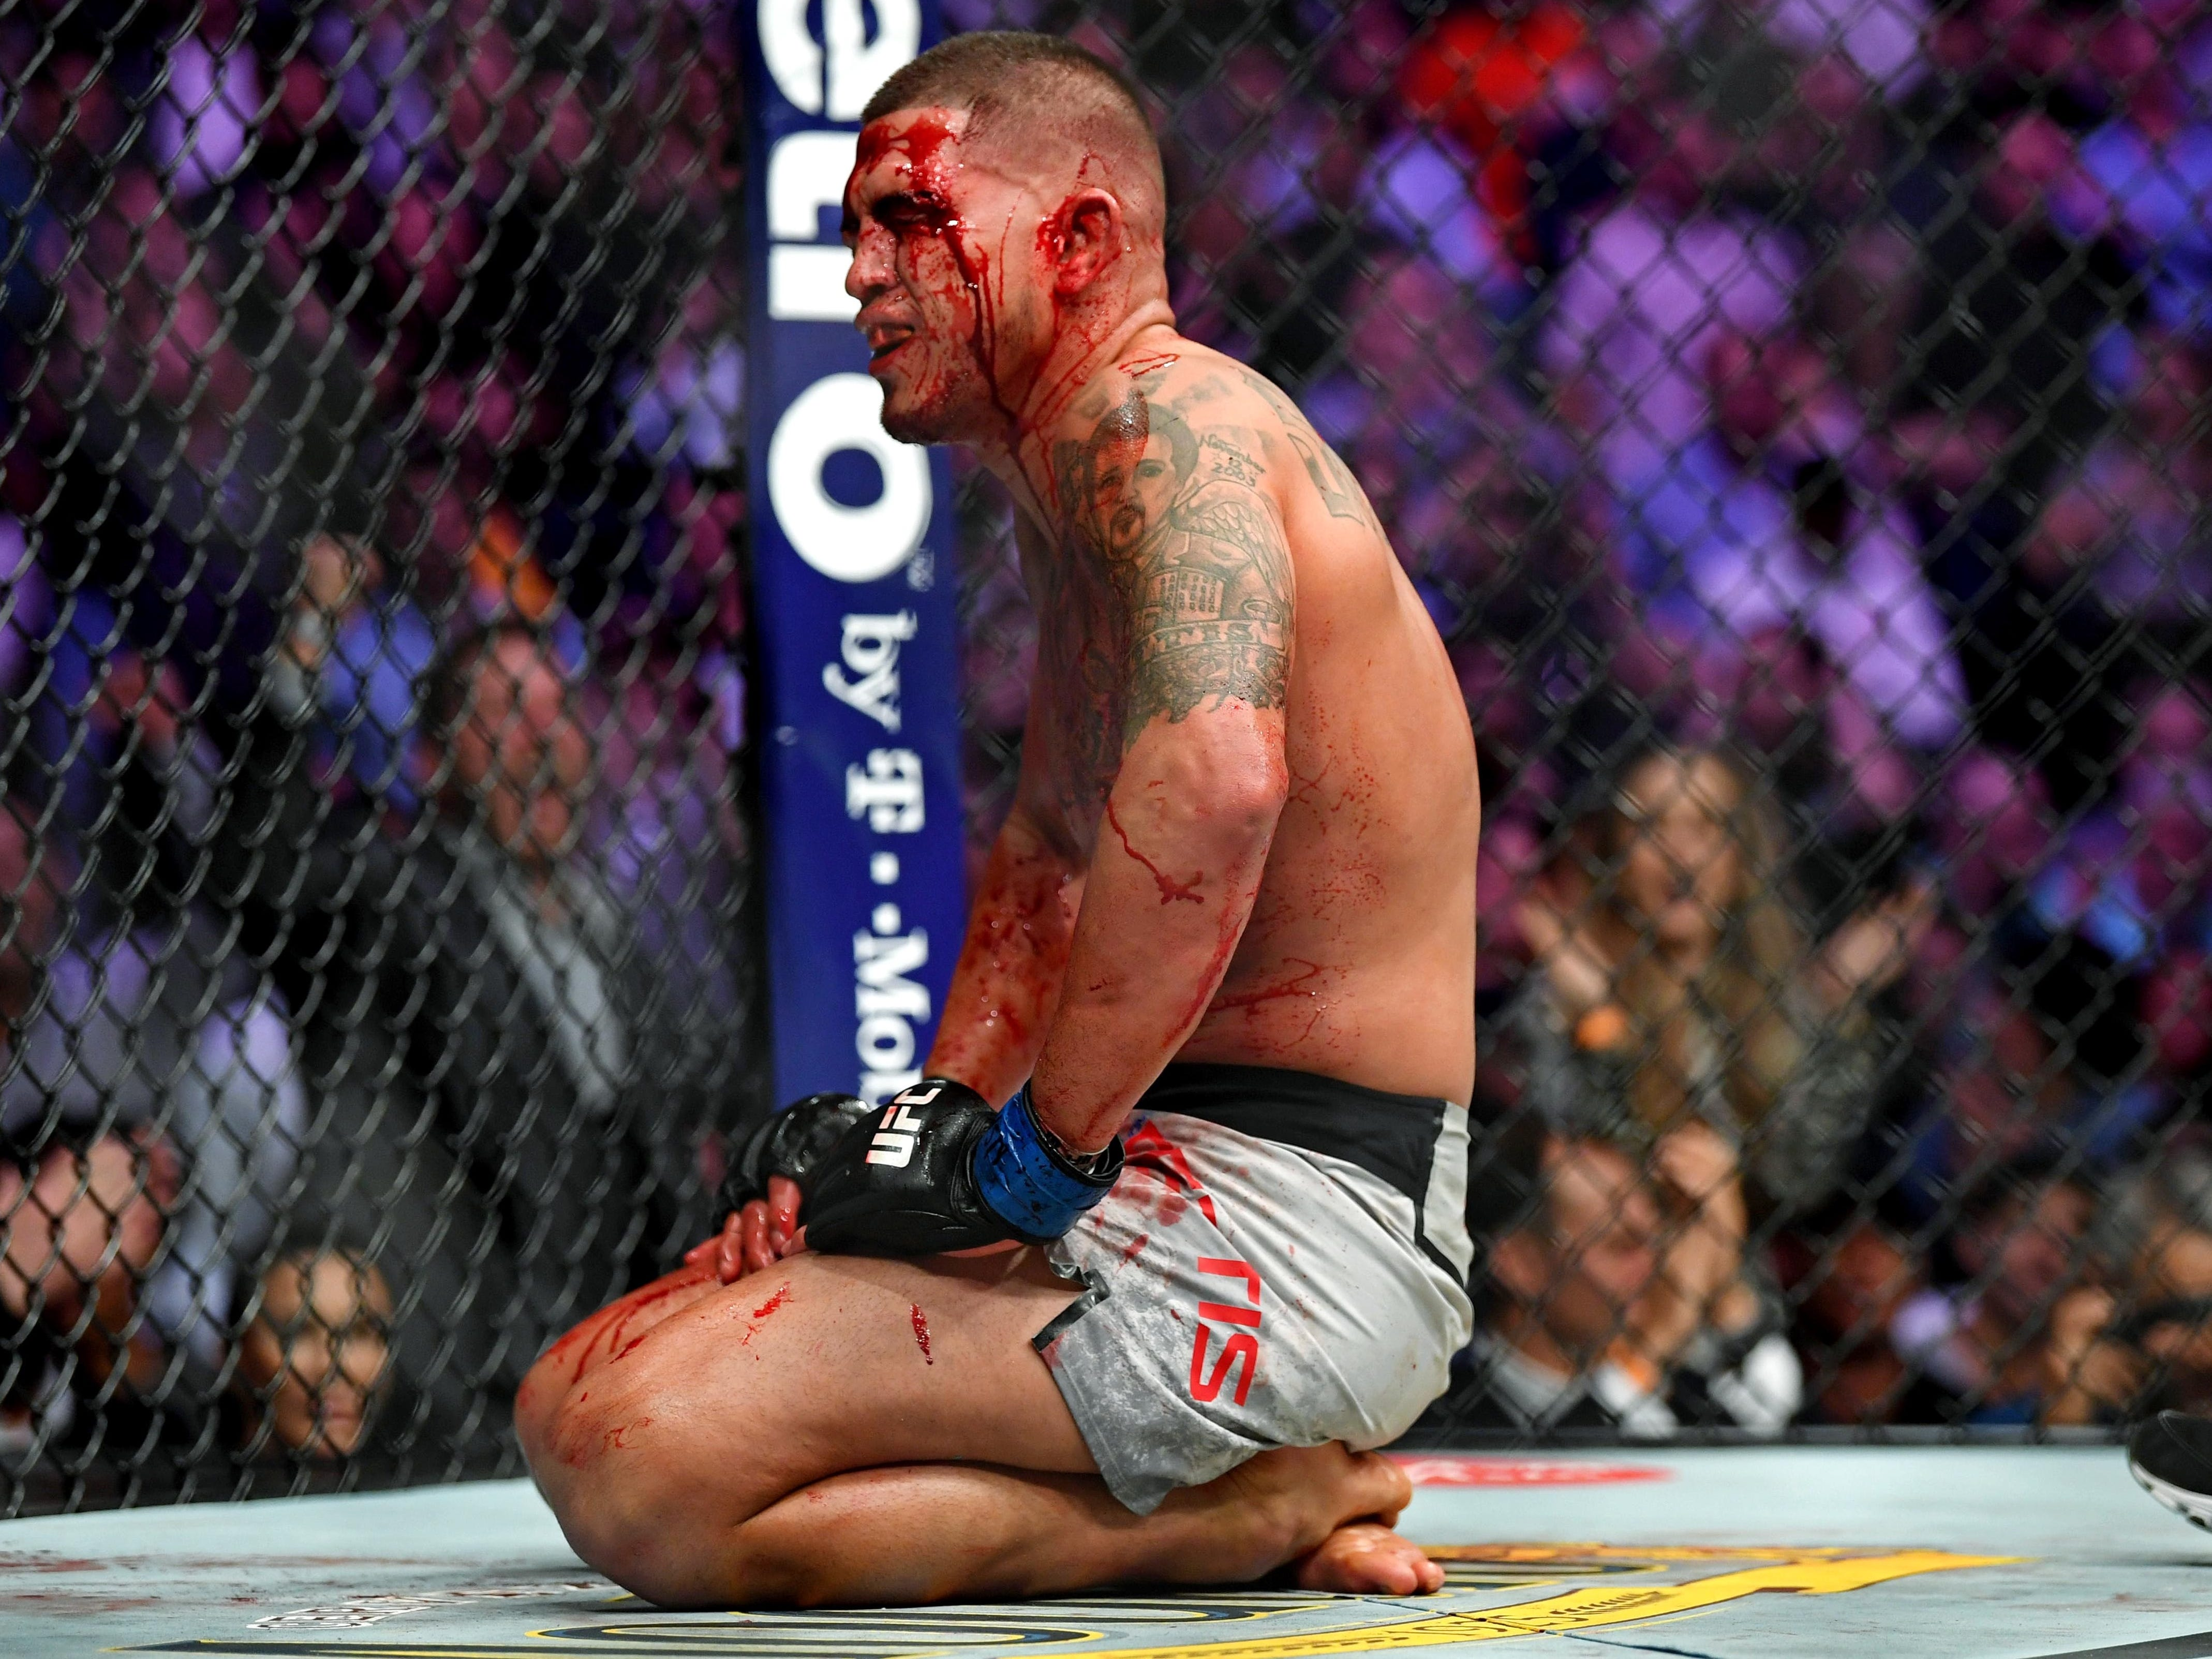 A bloody and battered Anthony Pettis on the mat after losing to Tony Ferguson. Pettis' corner stopped the fight after two rounds when Pettis suffered a broken hand.